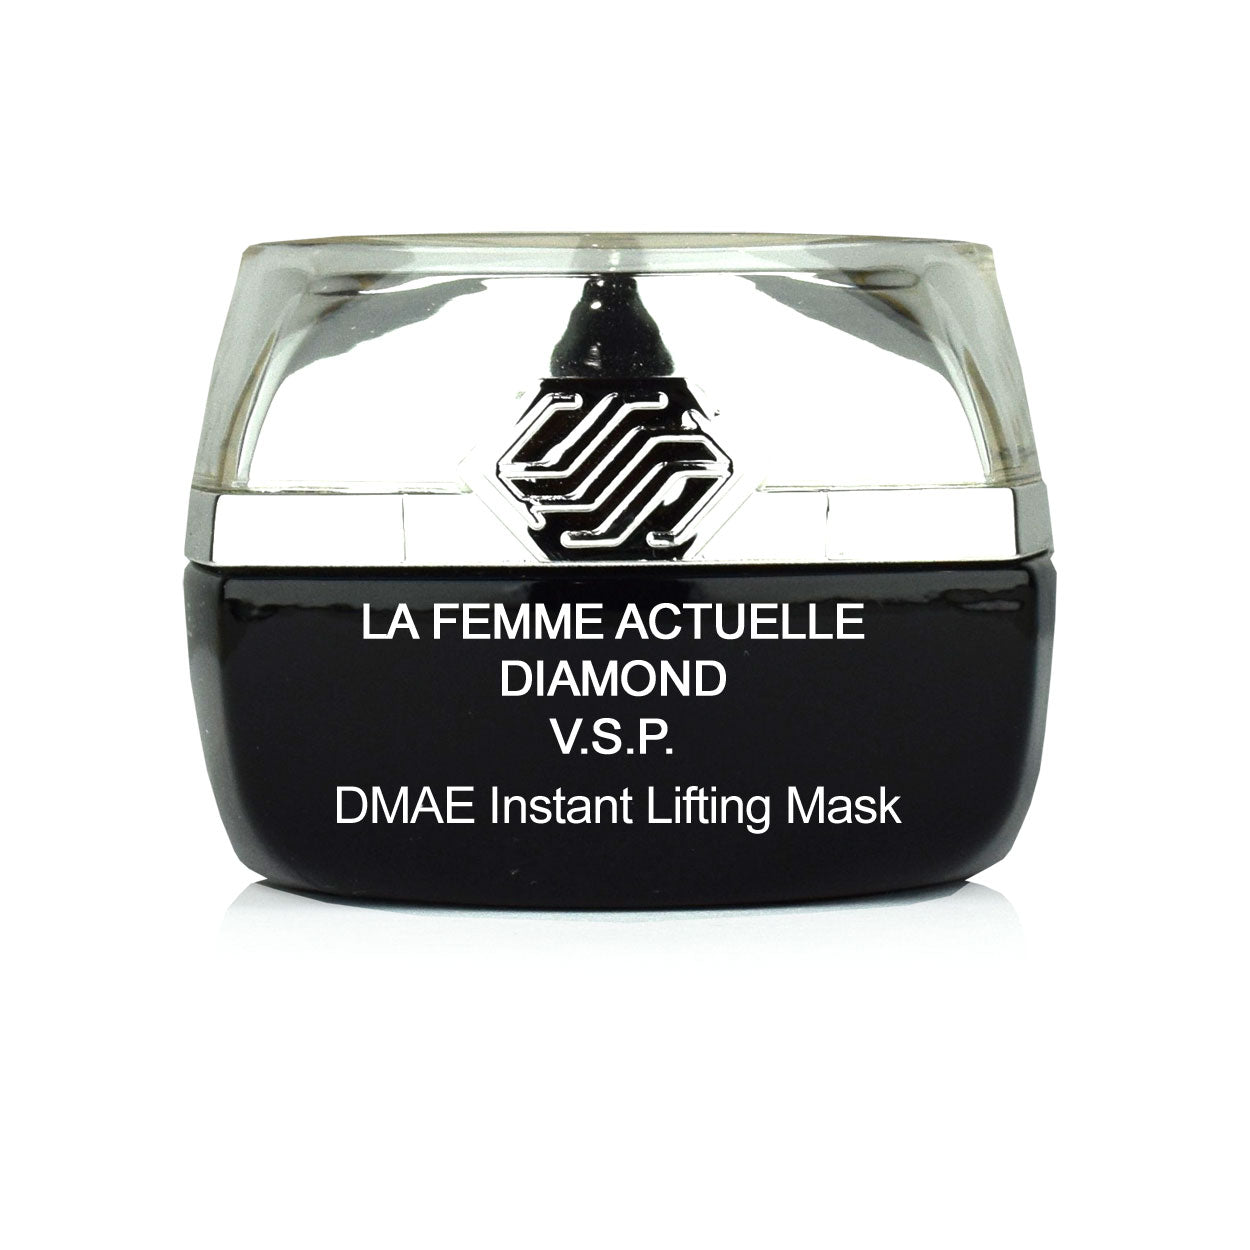 La Femme Diamond DMAE Instant Lifting Mask